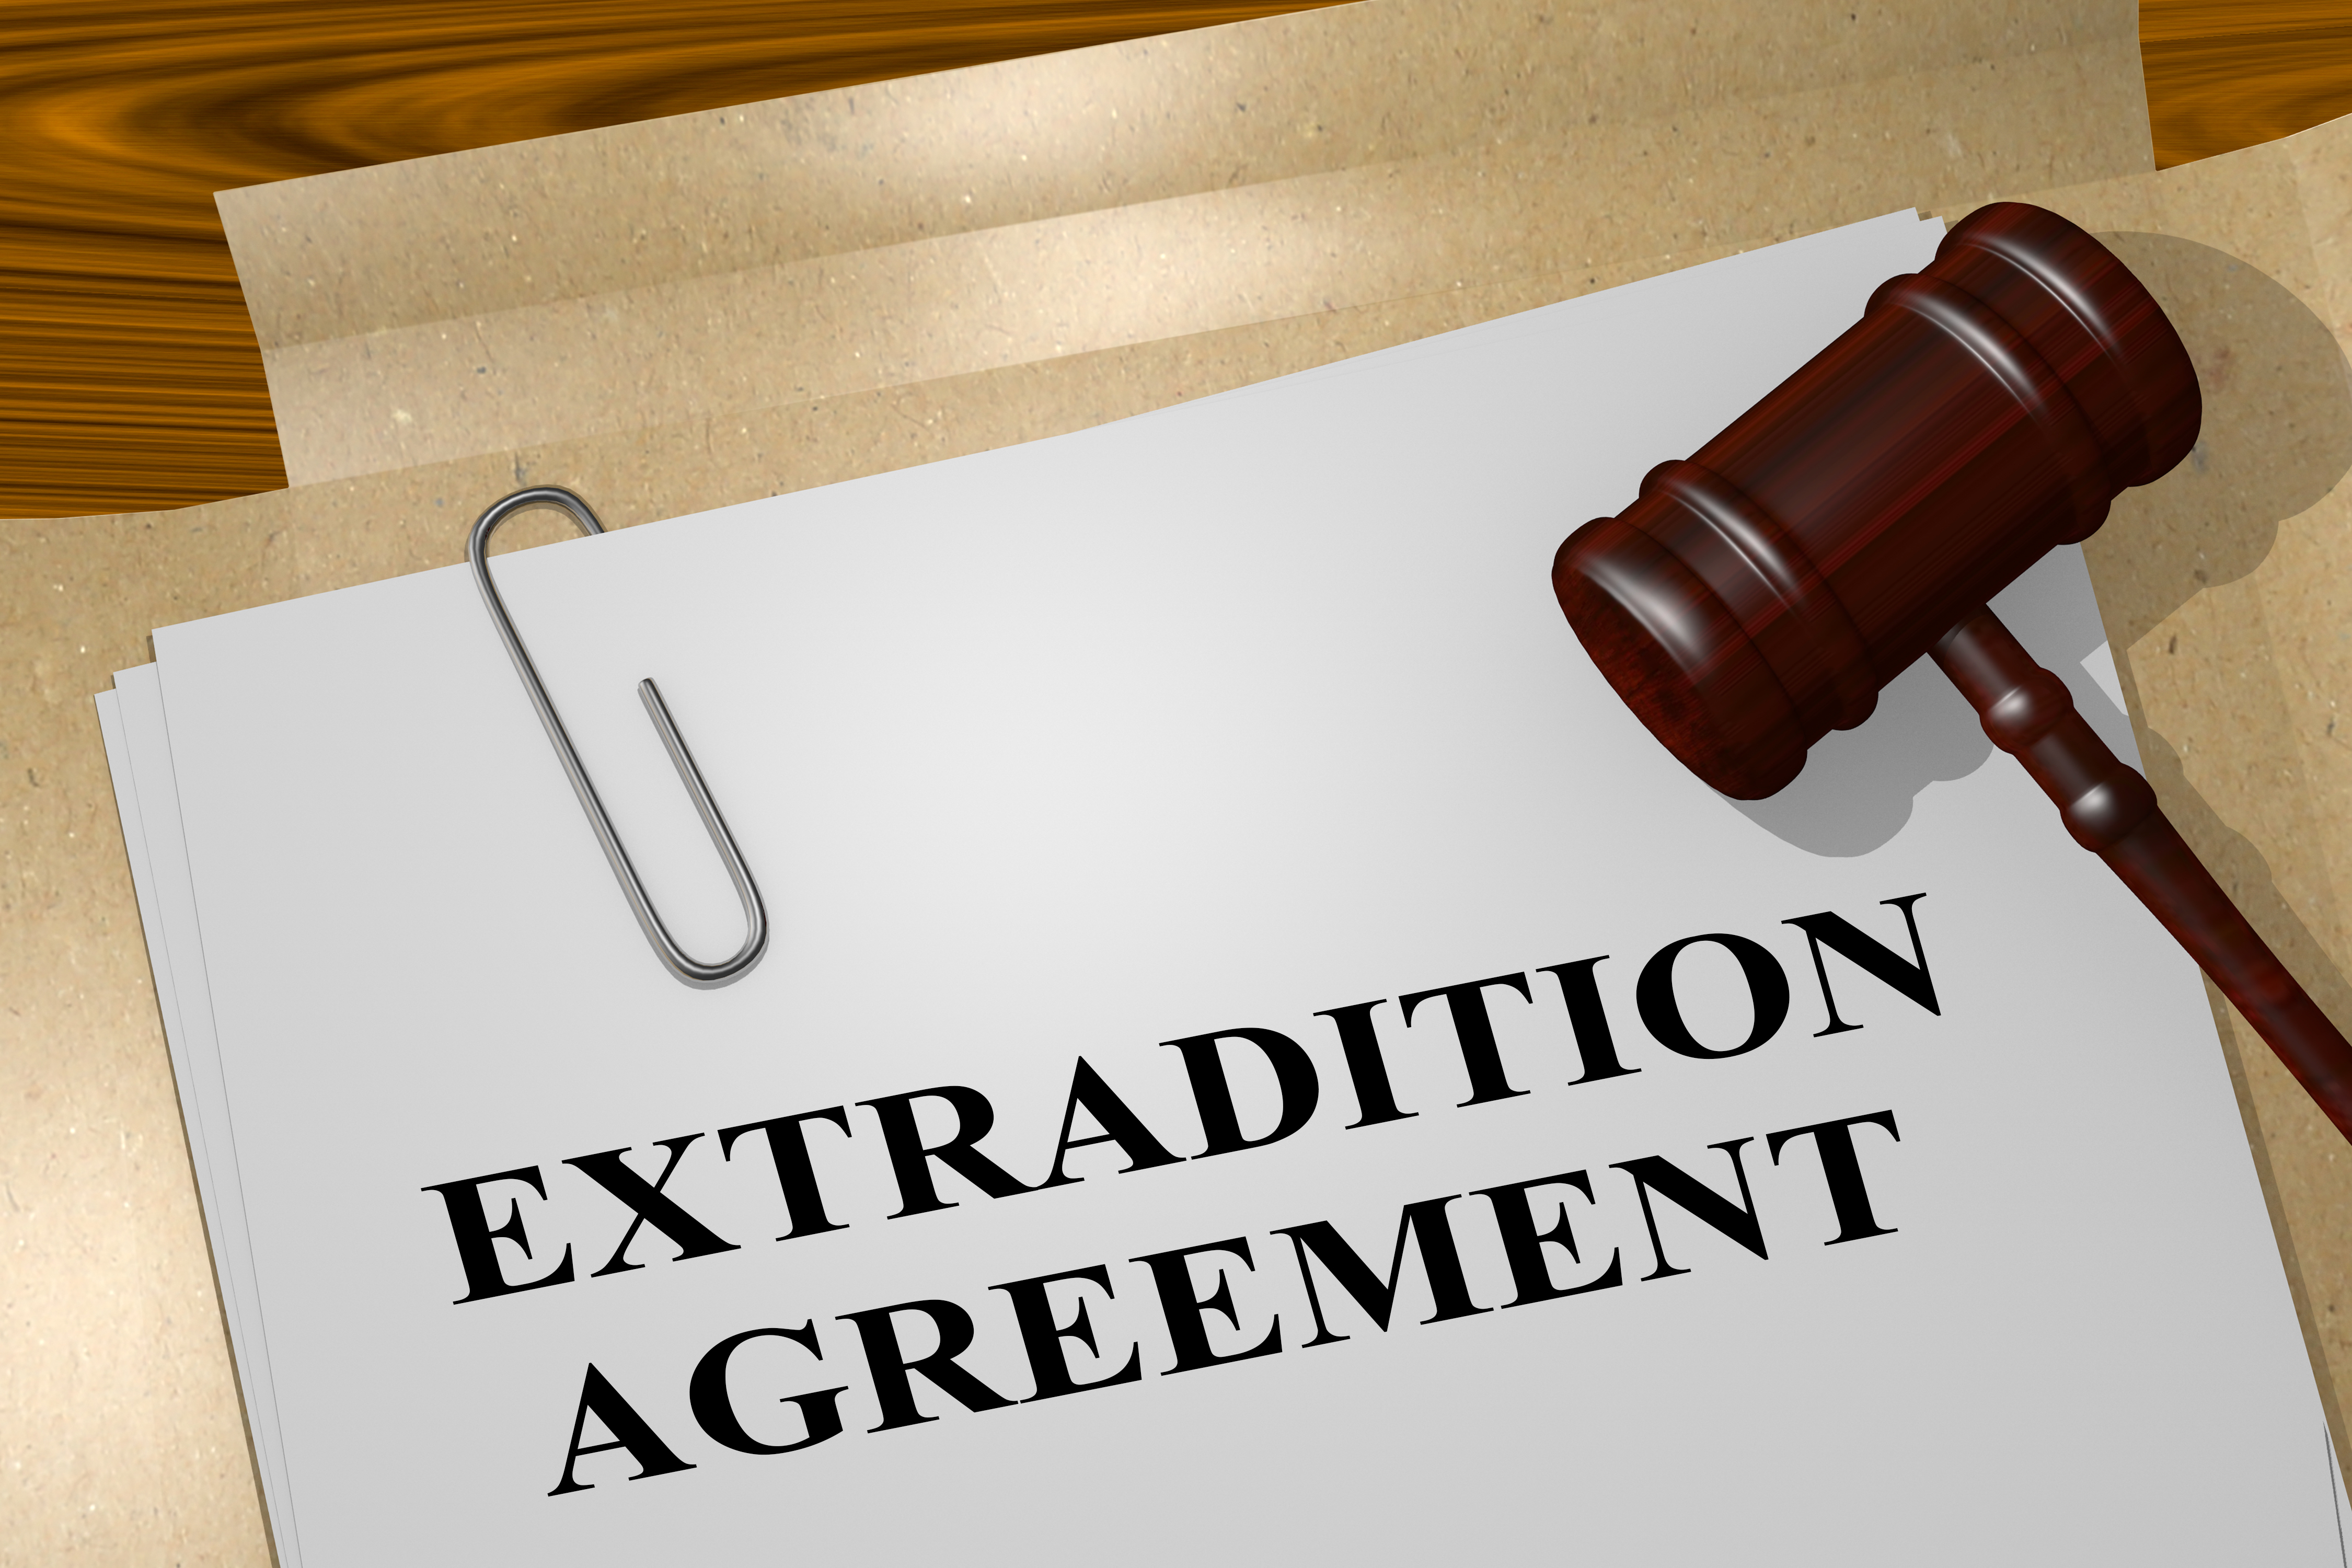 Gavel, Extradition Agreement, Legal Paperwork